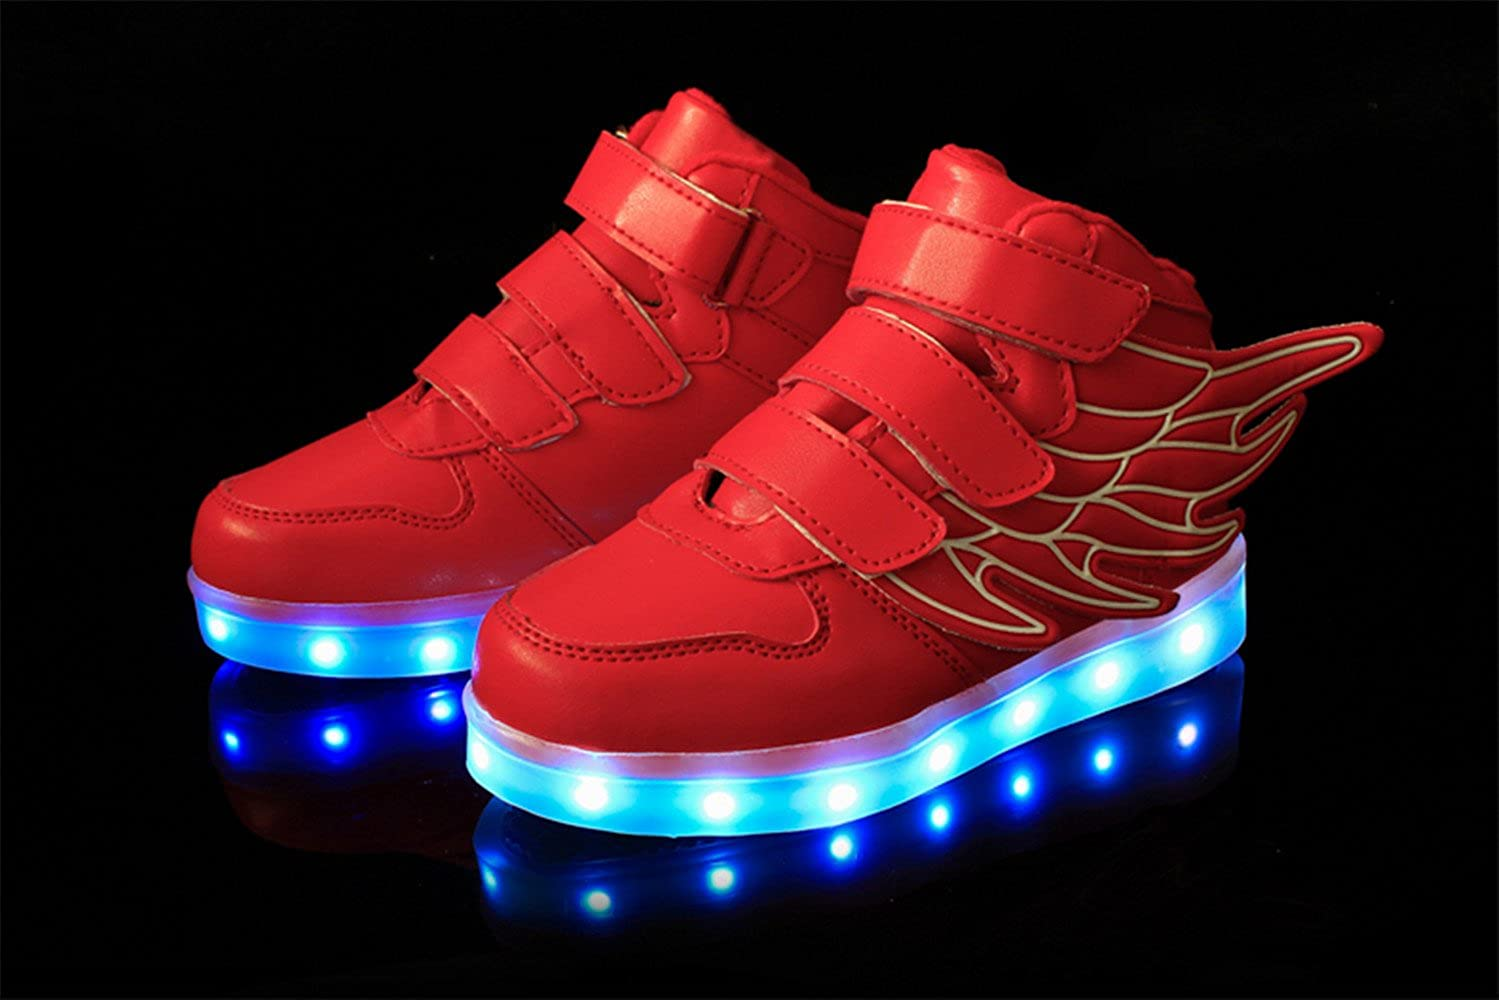 HarlanLi Kids Rechargeable 7 Colors LED light up Flashing Wing Shoes Toddler//Little Kids//Big Kids